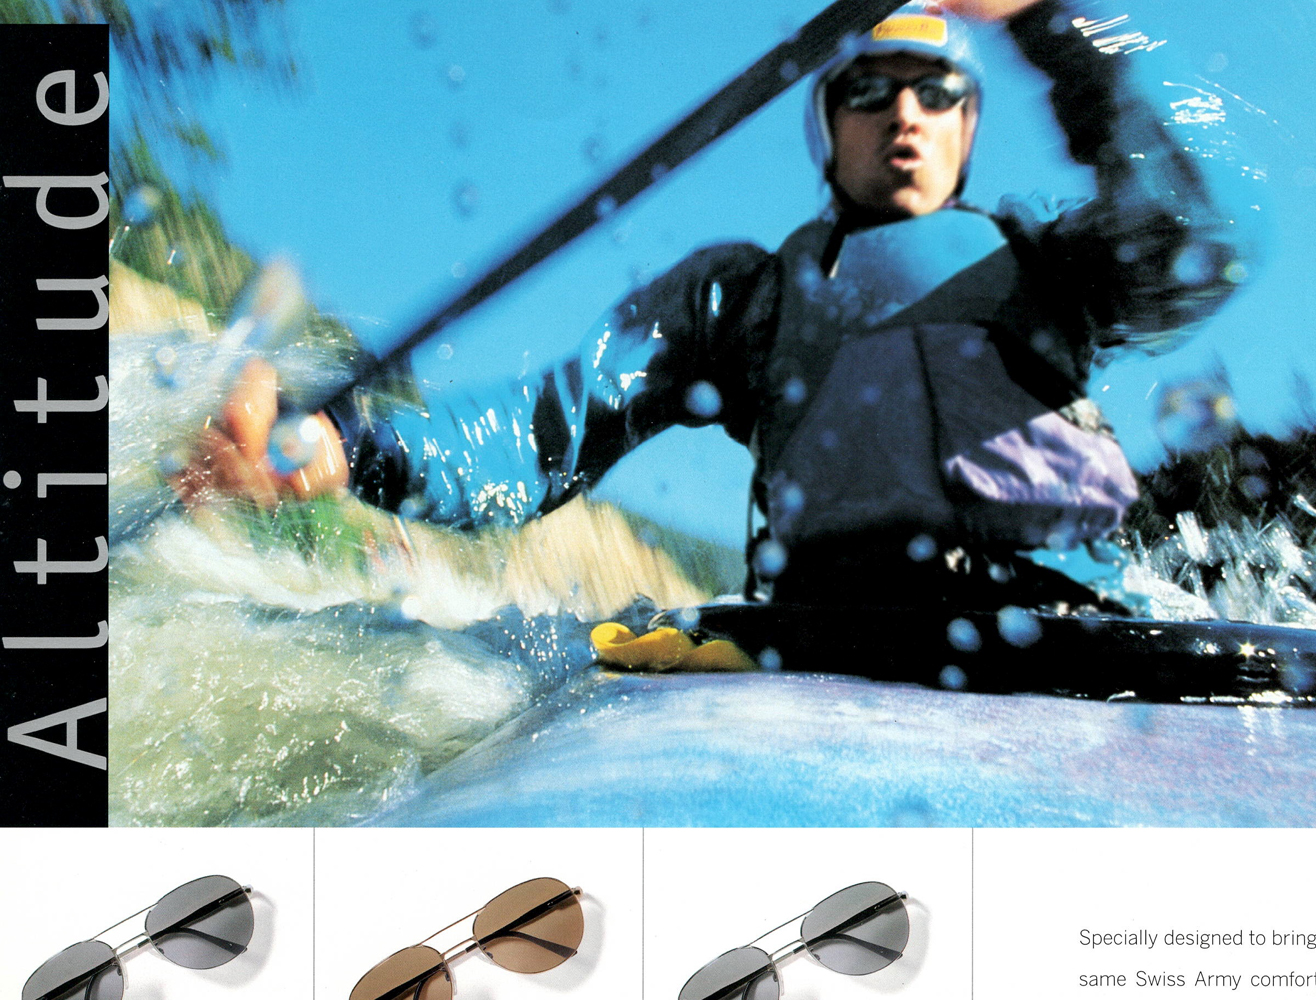 Man in kayak wearing Swiss Army shades